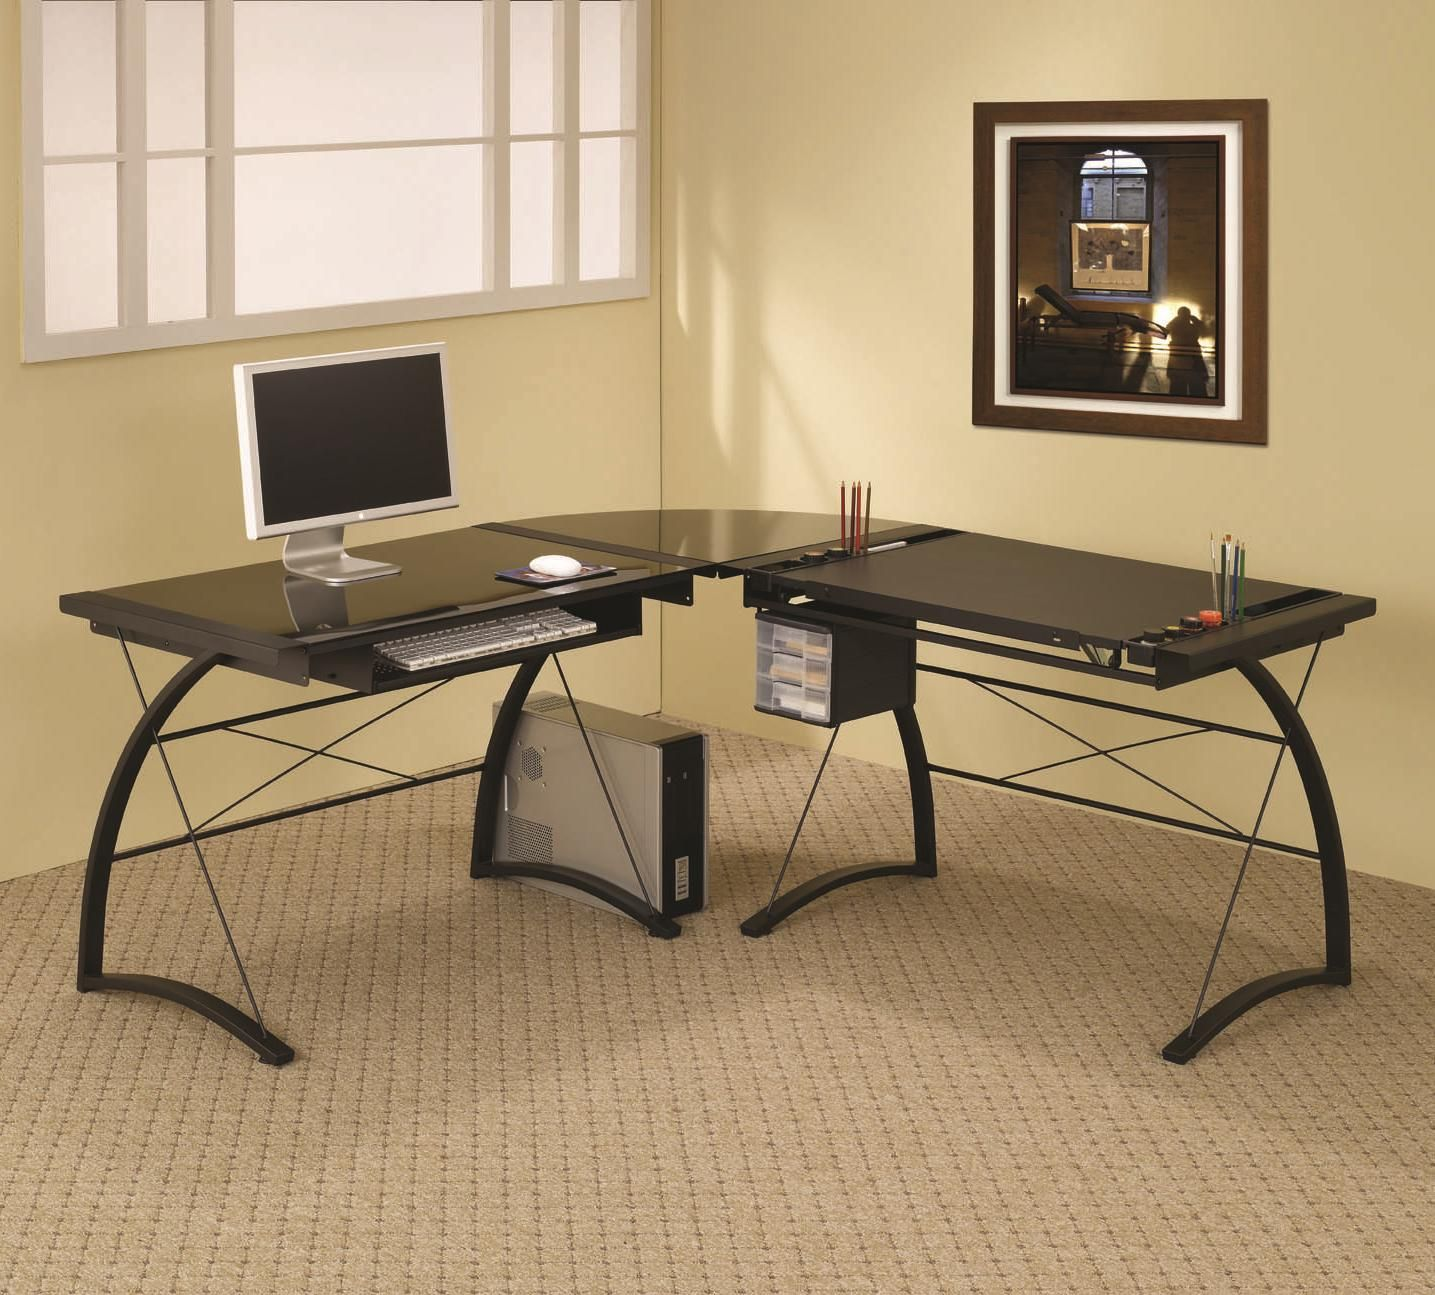 Foxy Black Computer Desk With Monitor Surprising Top And Storage Space Underneath For Keyboa Modern Glass Top Desk Computer Desks For Home Glass Computer Desks